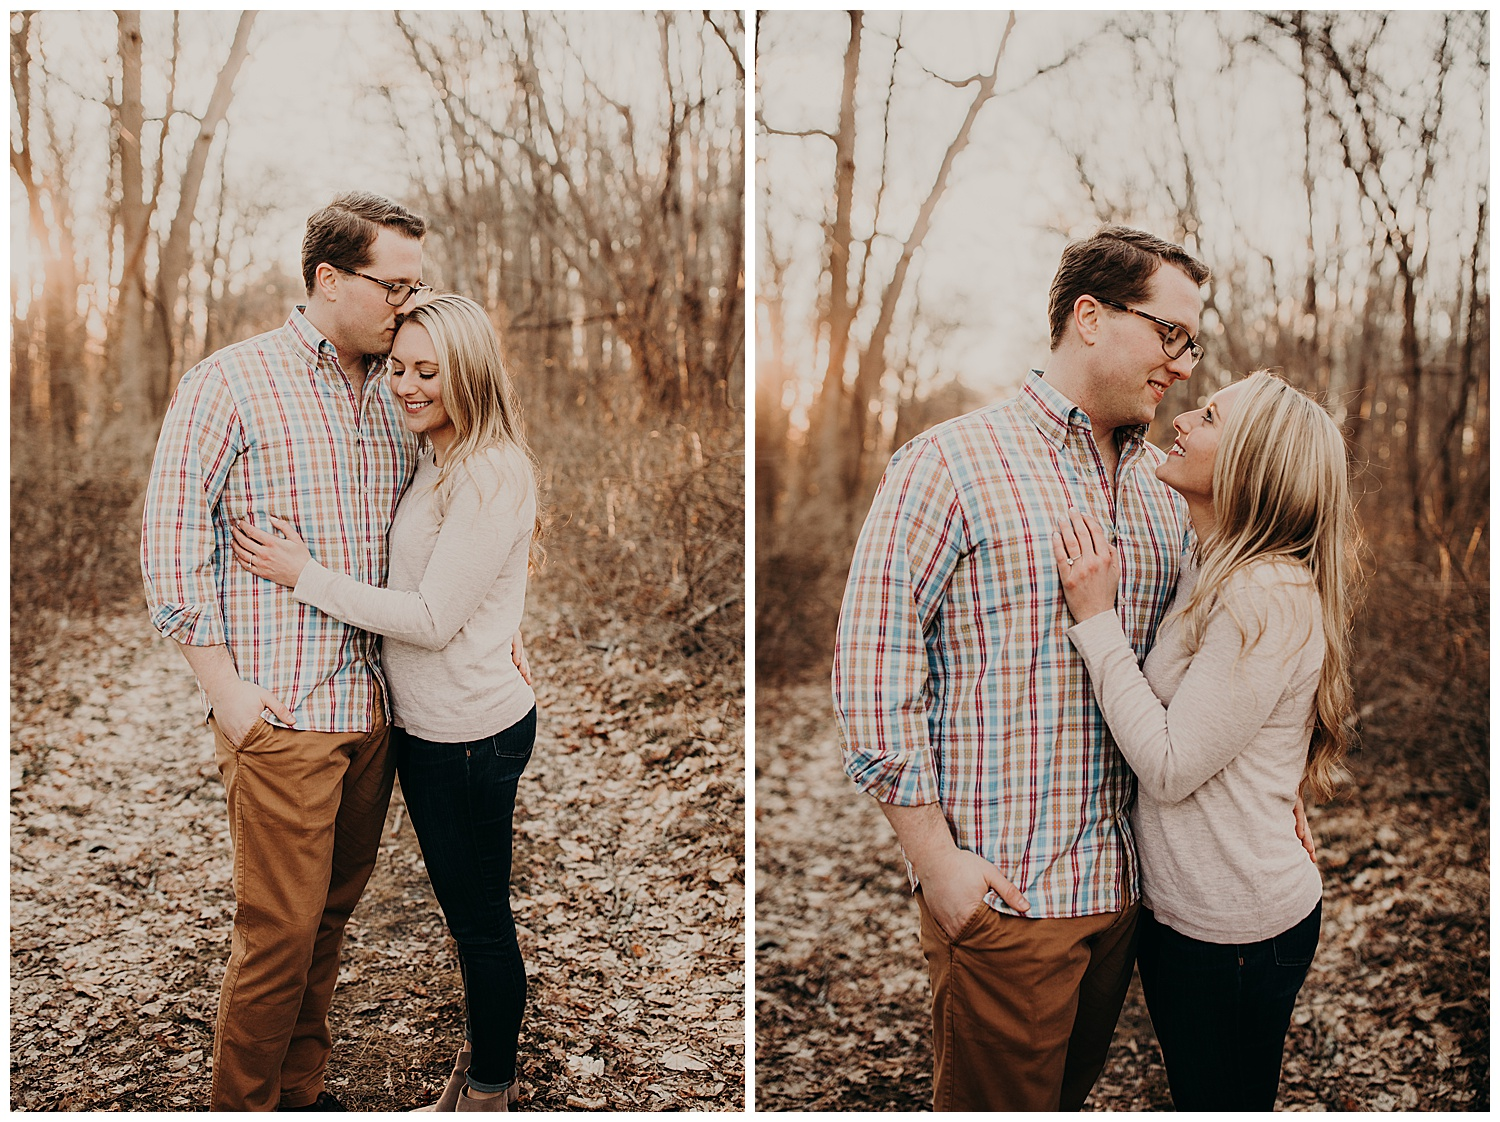 tyler-lauren-colt-state-park-winter-engagement-session-bristol-rhode-island07.jpg